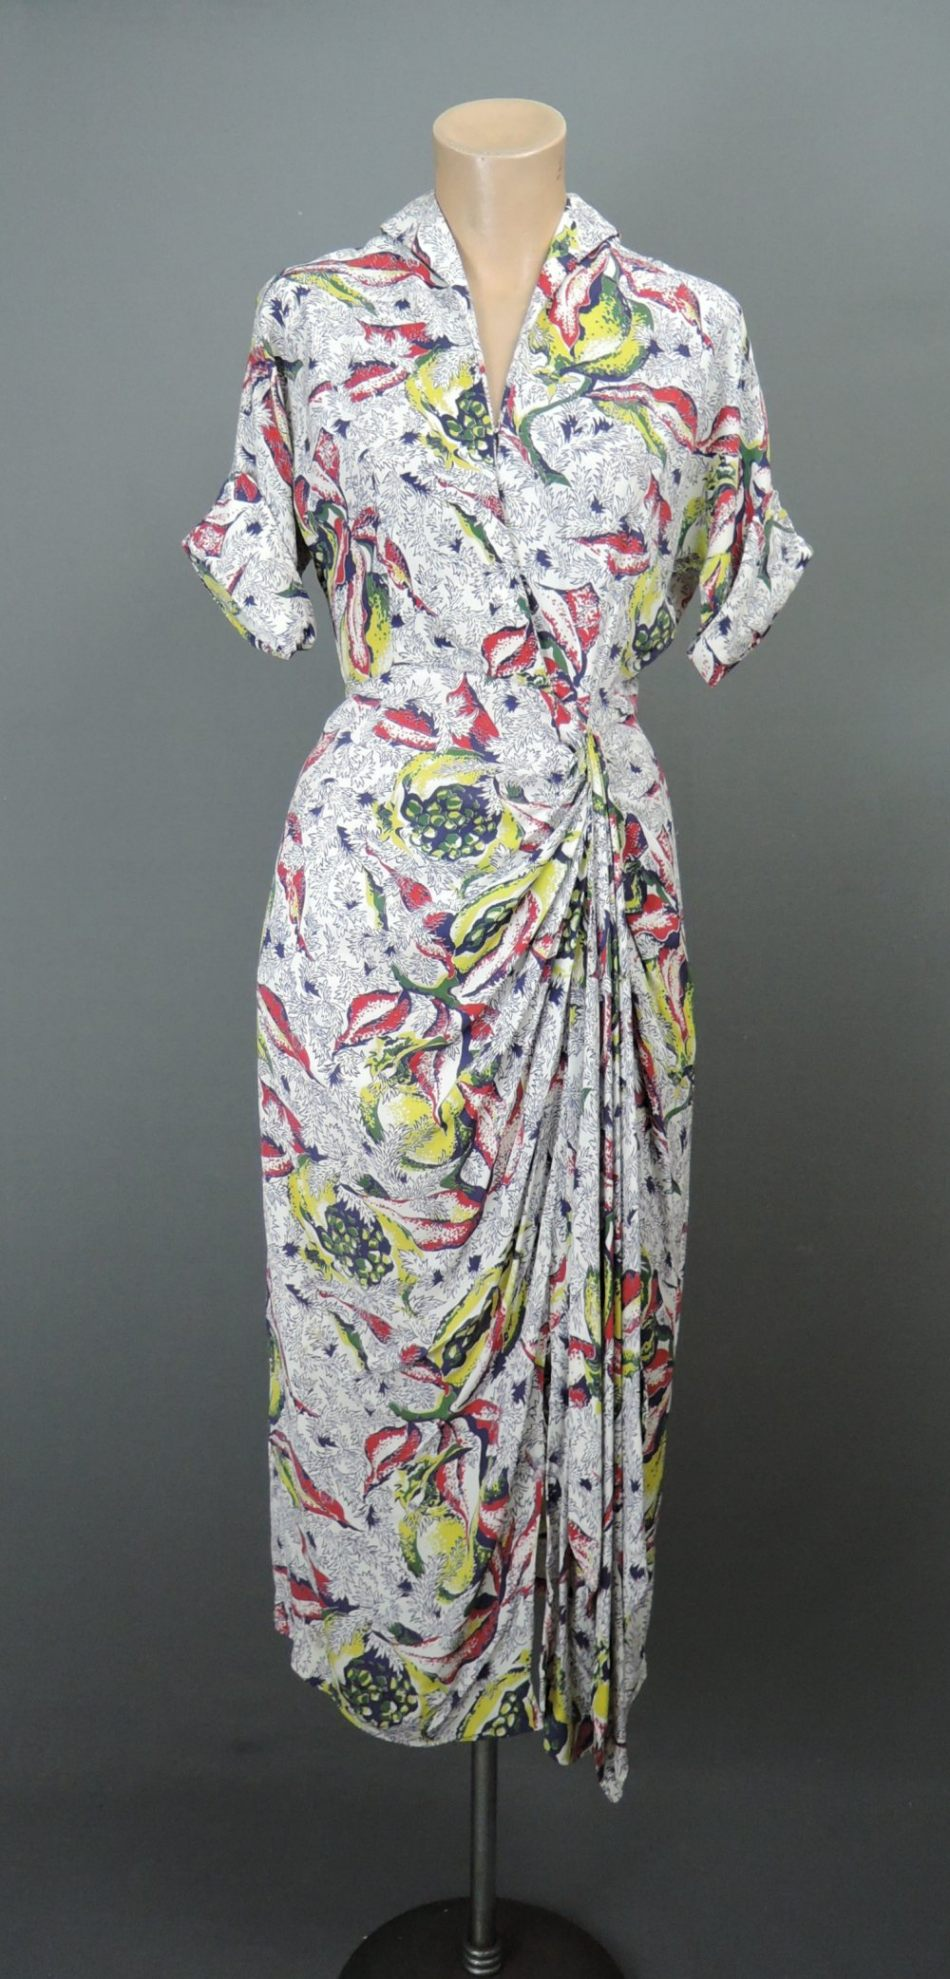 Vintage 1940s Draped Rayon Dress, Tropical Floral Print, fits 32 bust